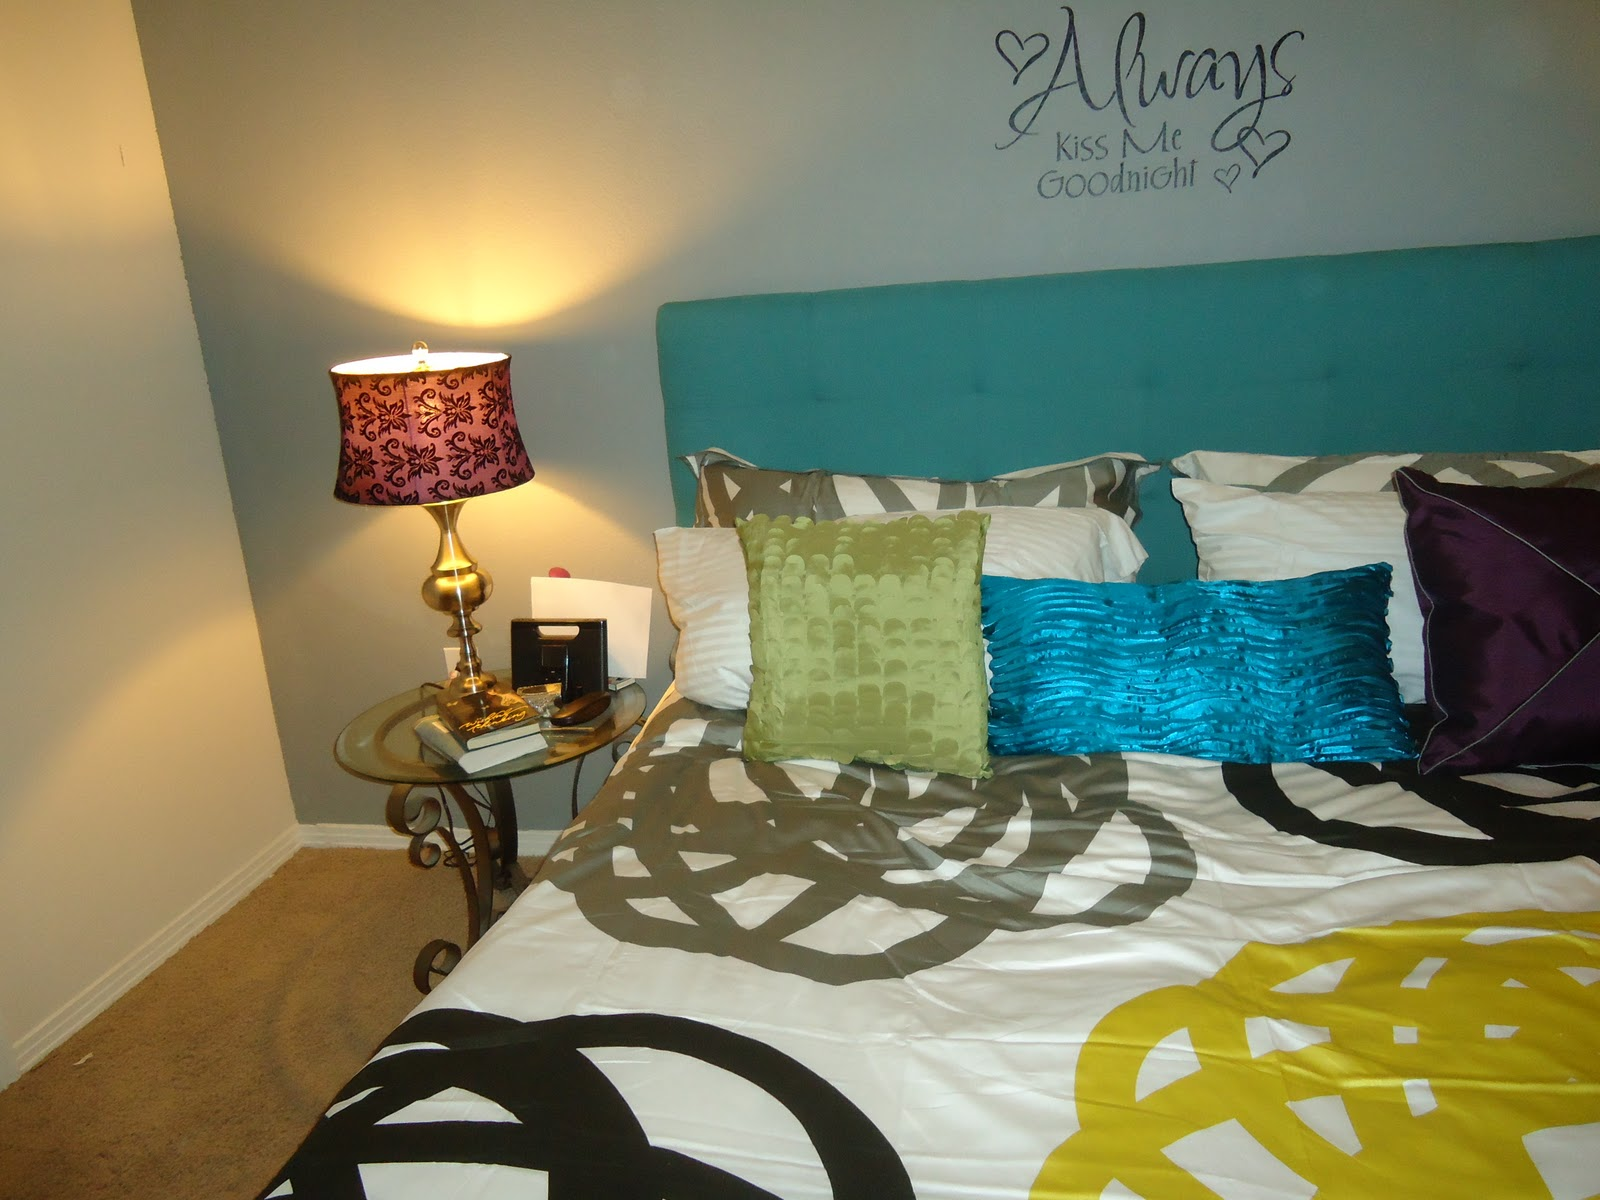 Plus size blog, bedroom decor, Target, TJMaxx